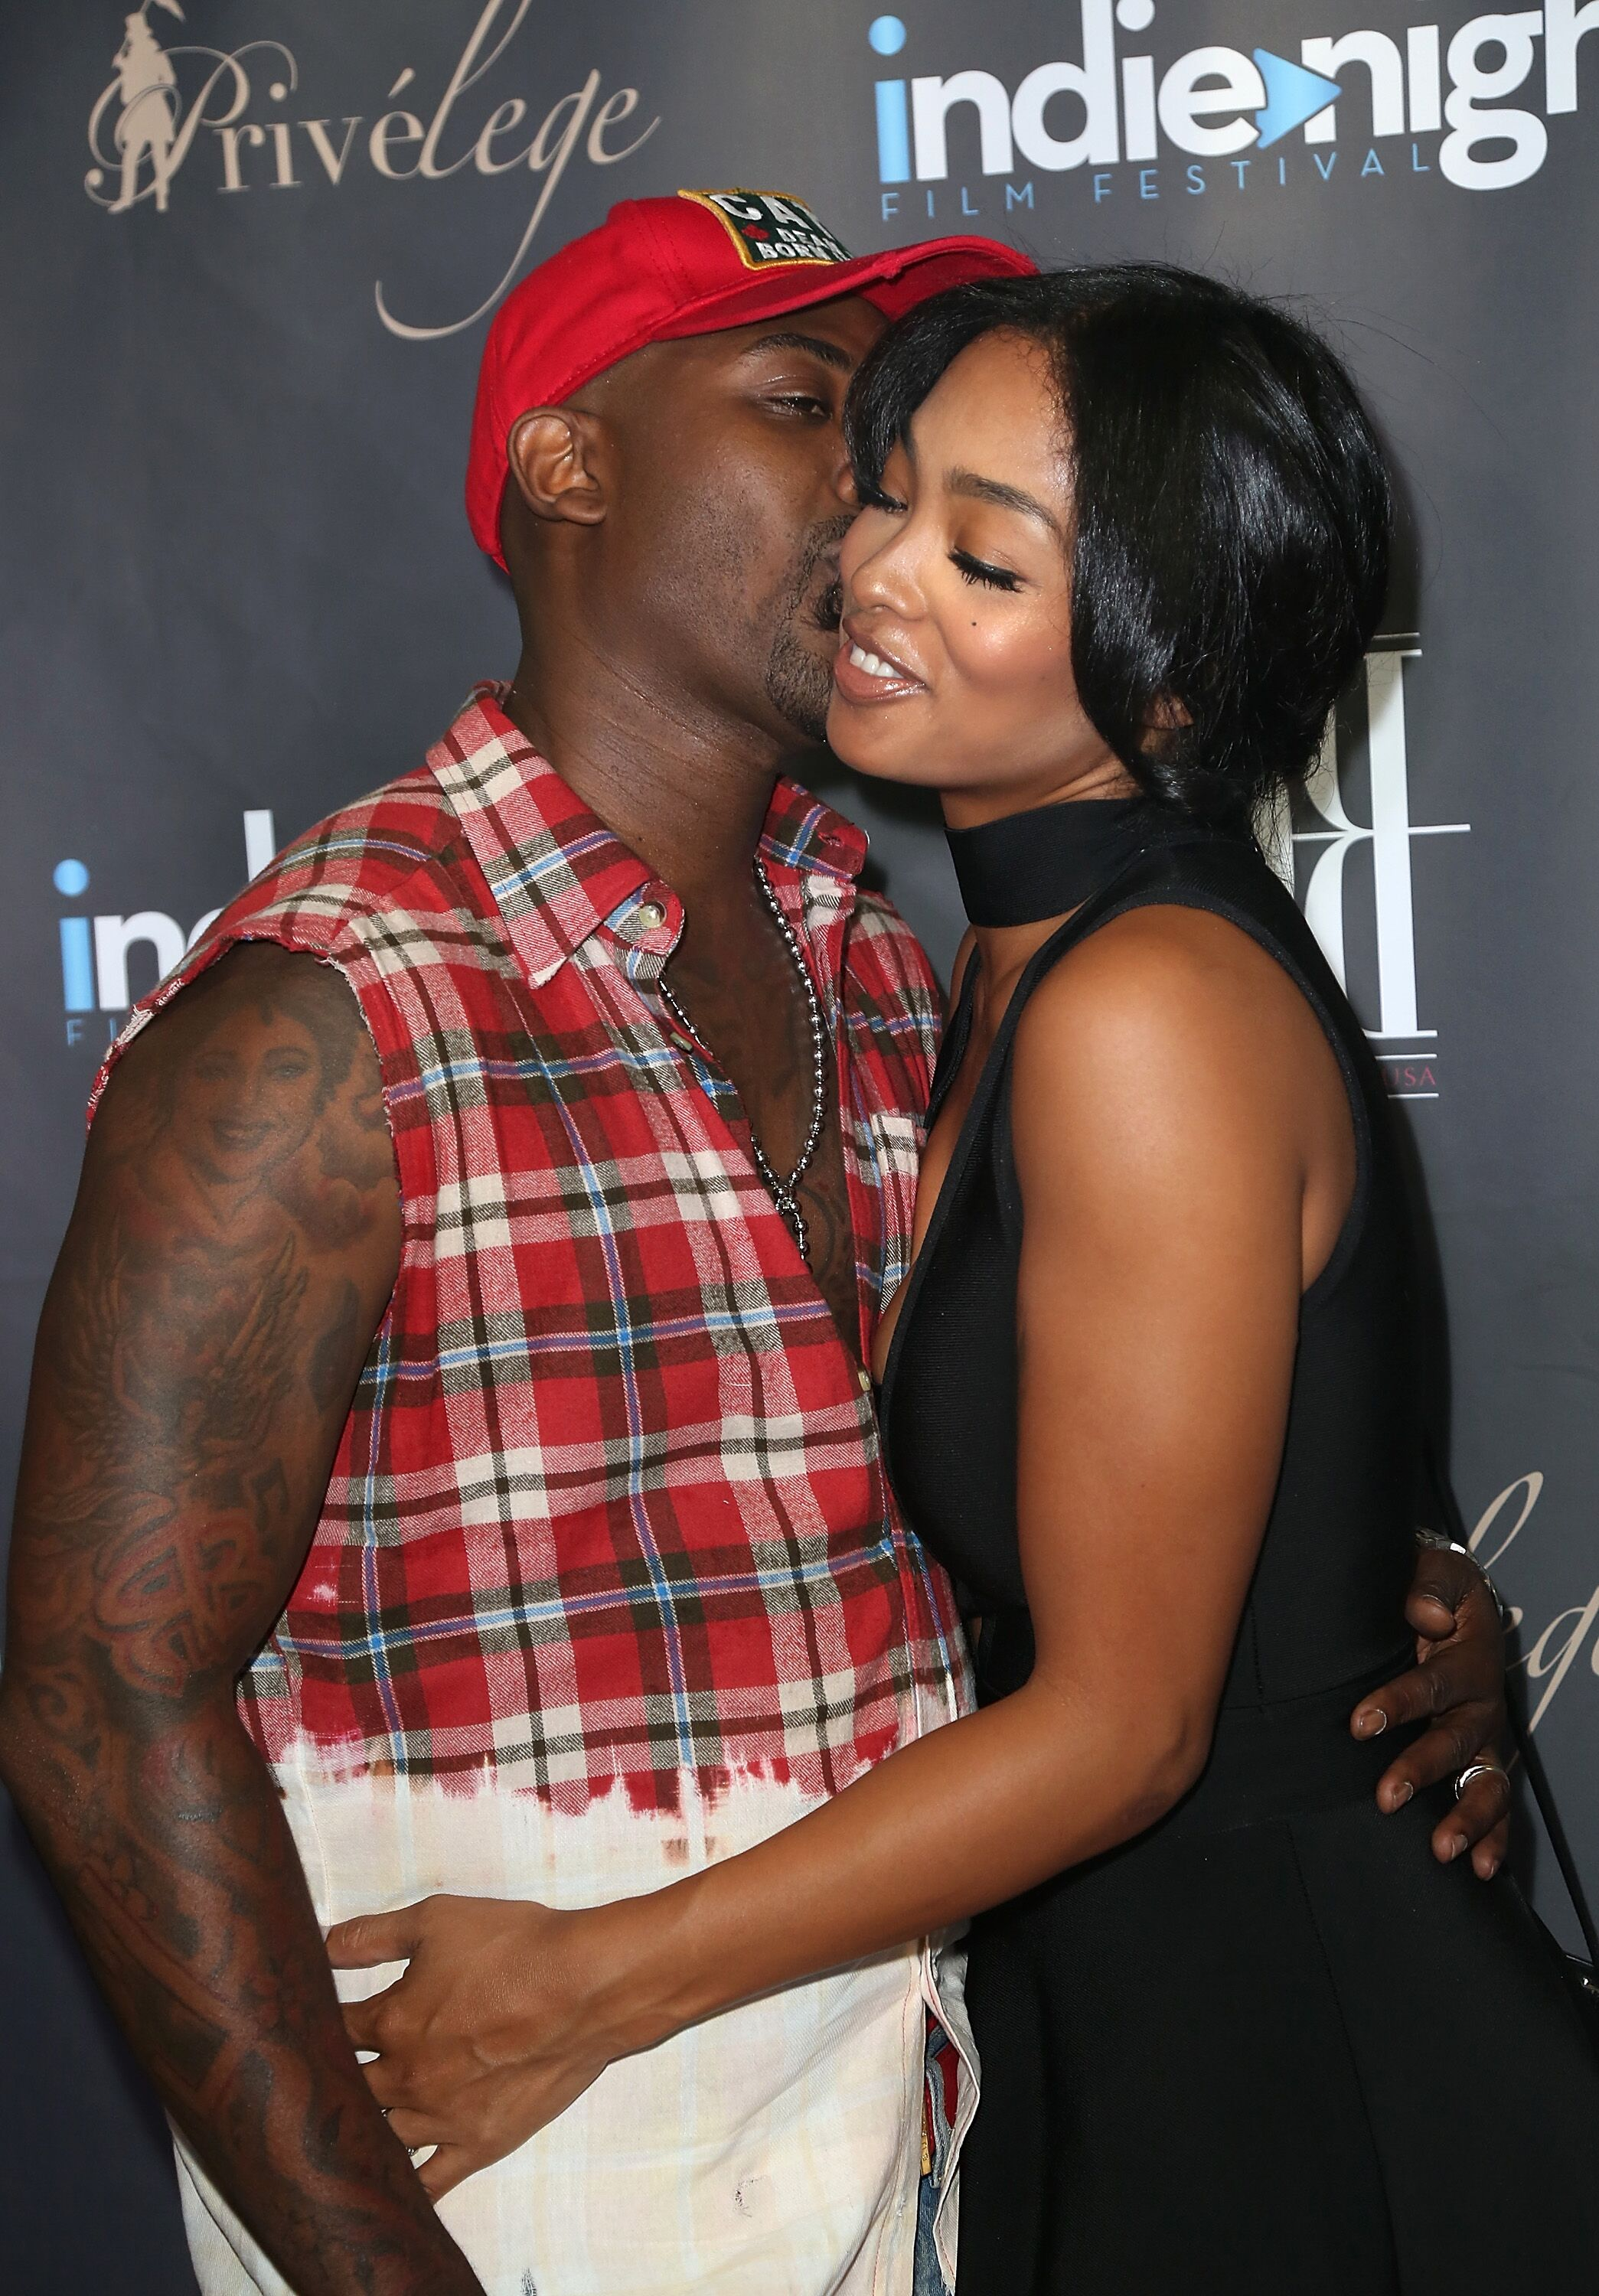 Reality stars Ray J and Princess Love at the Indie Night Film Festival/ Source: Getty Images